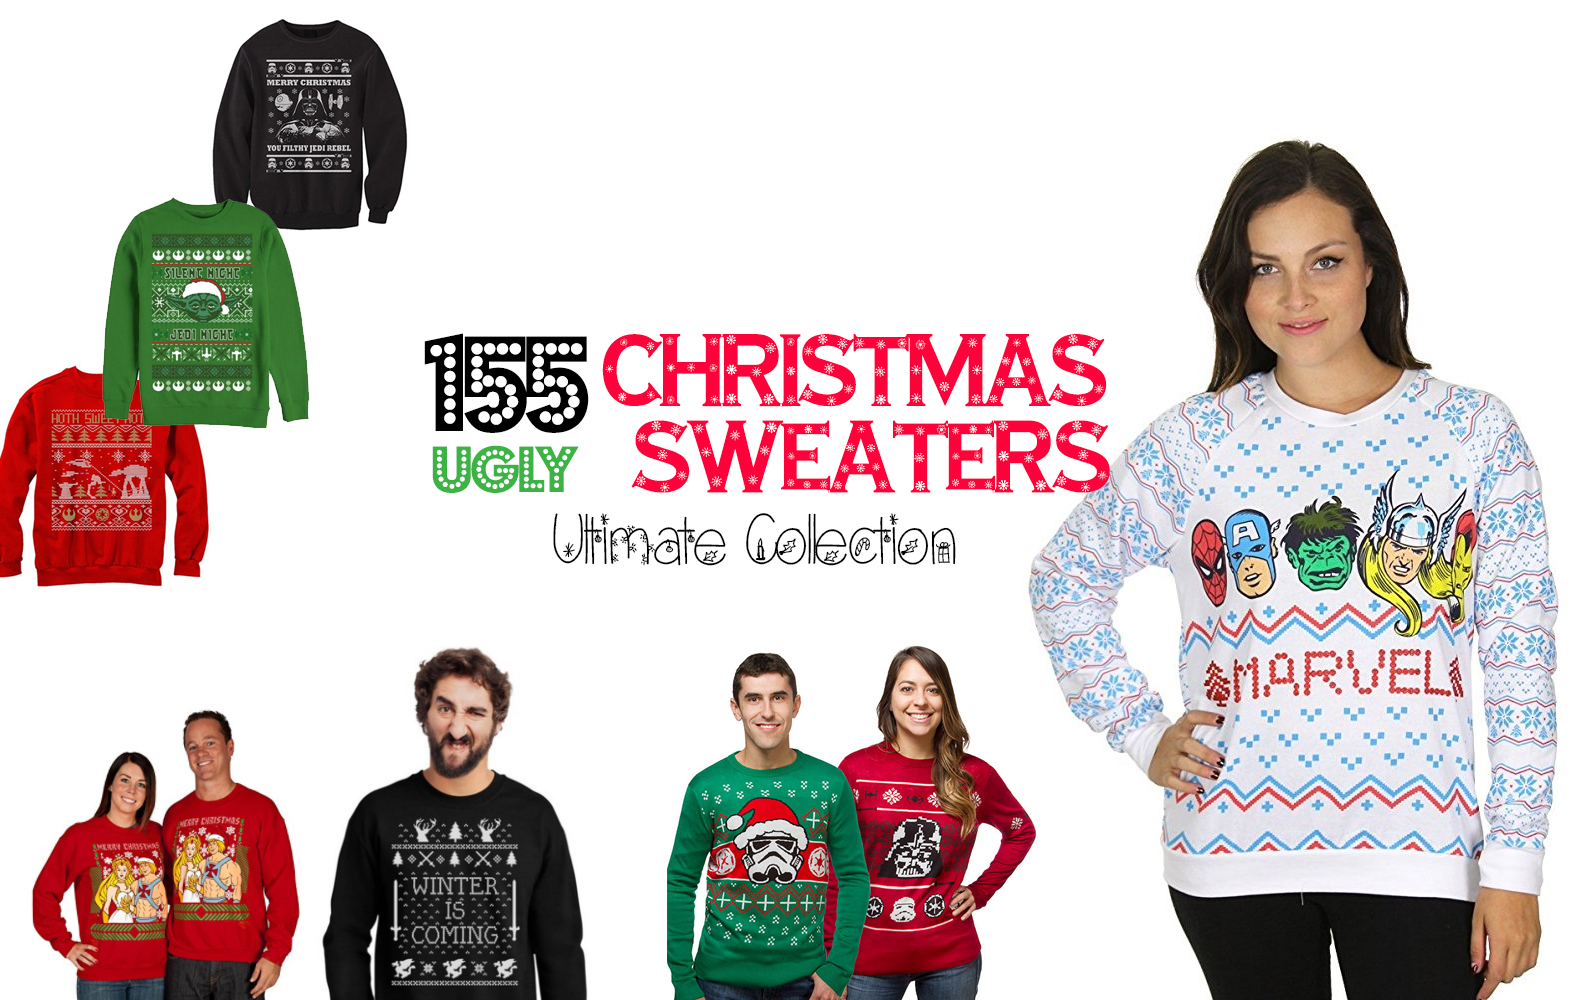 155 Ugly Christmas Sweaters: The Ultimate Collection - Walyou